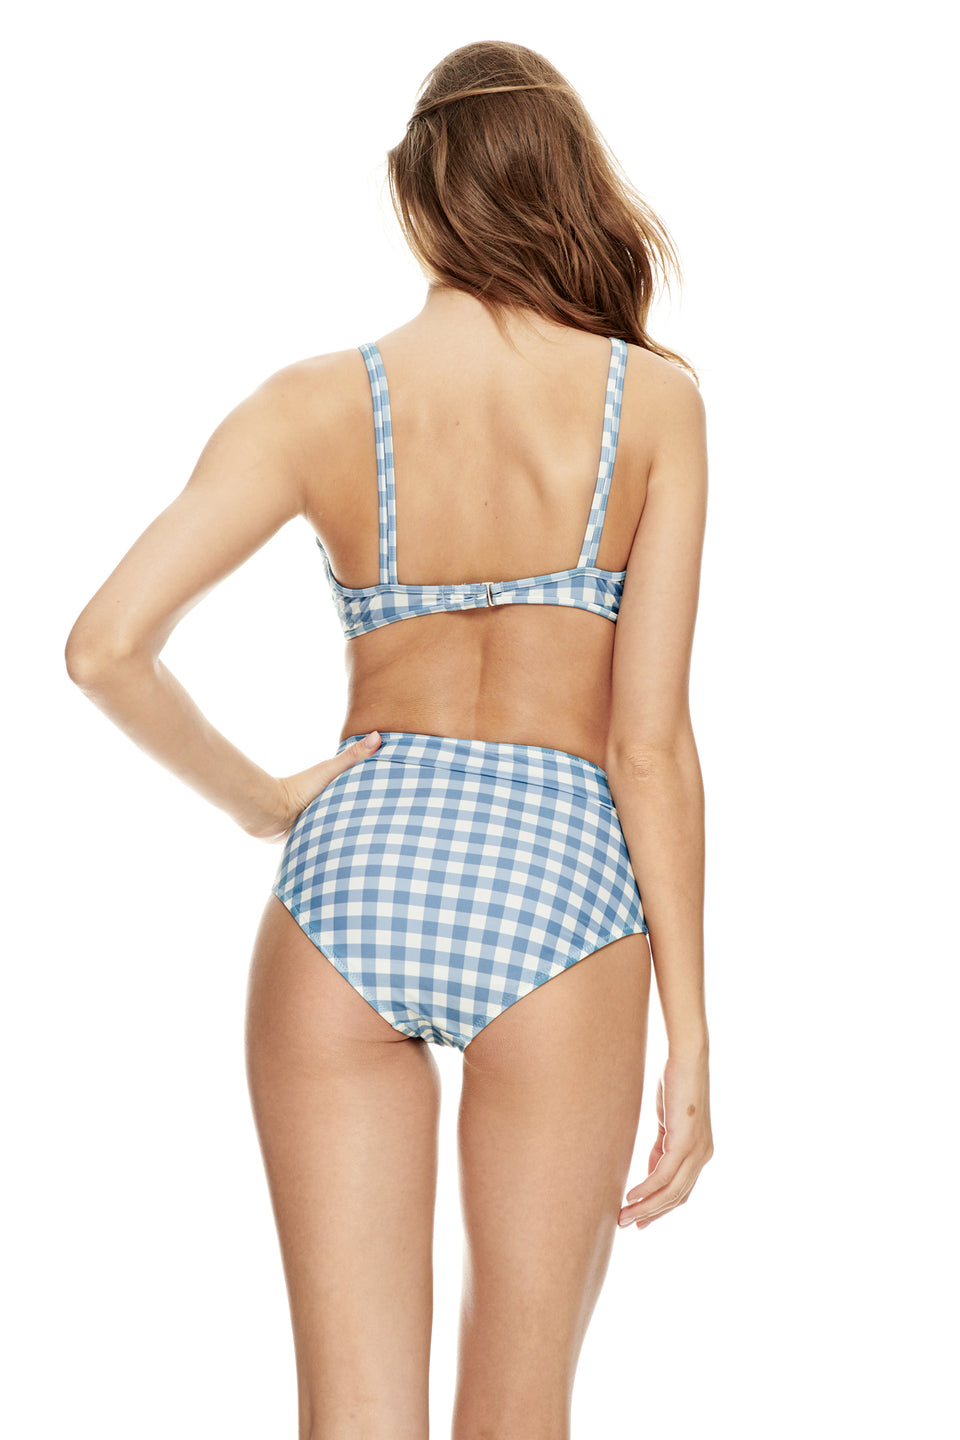 Martinique top-GINGHAM PALE BLUE